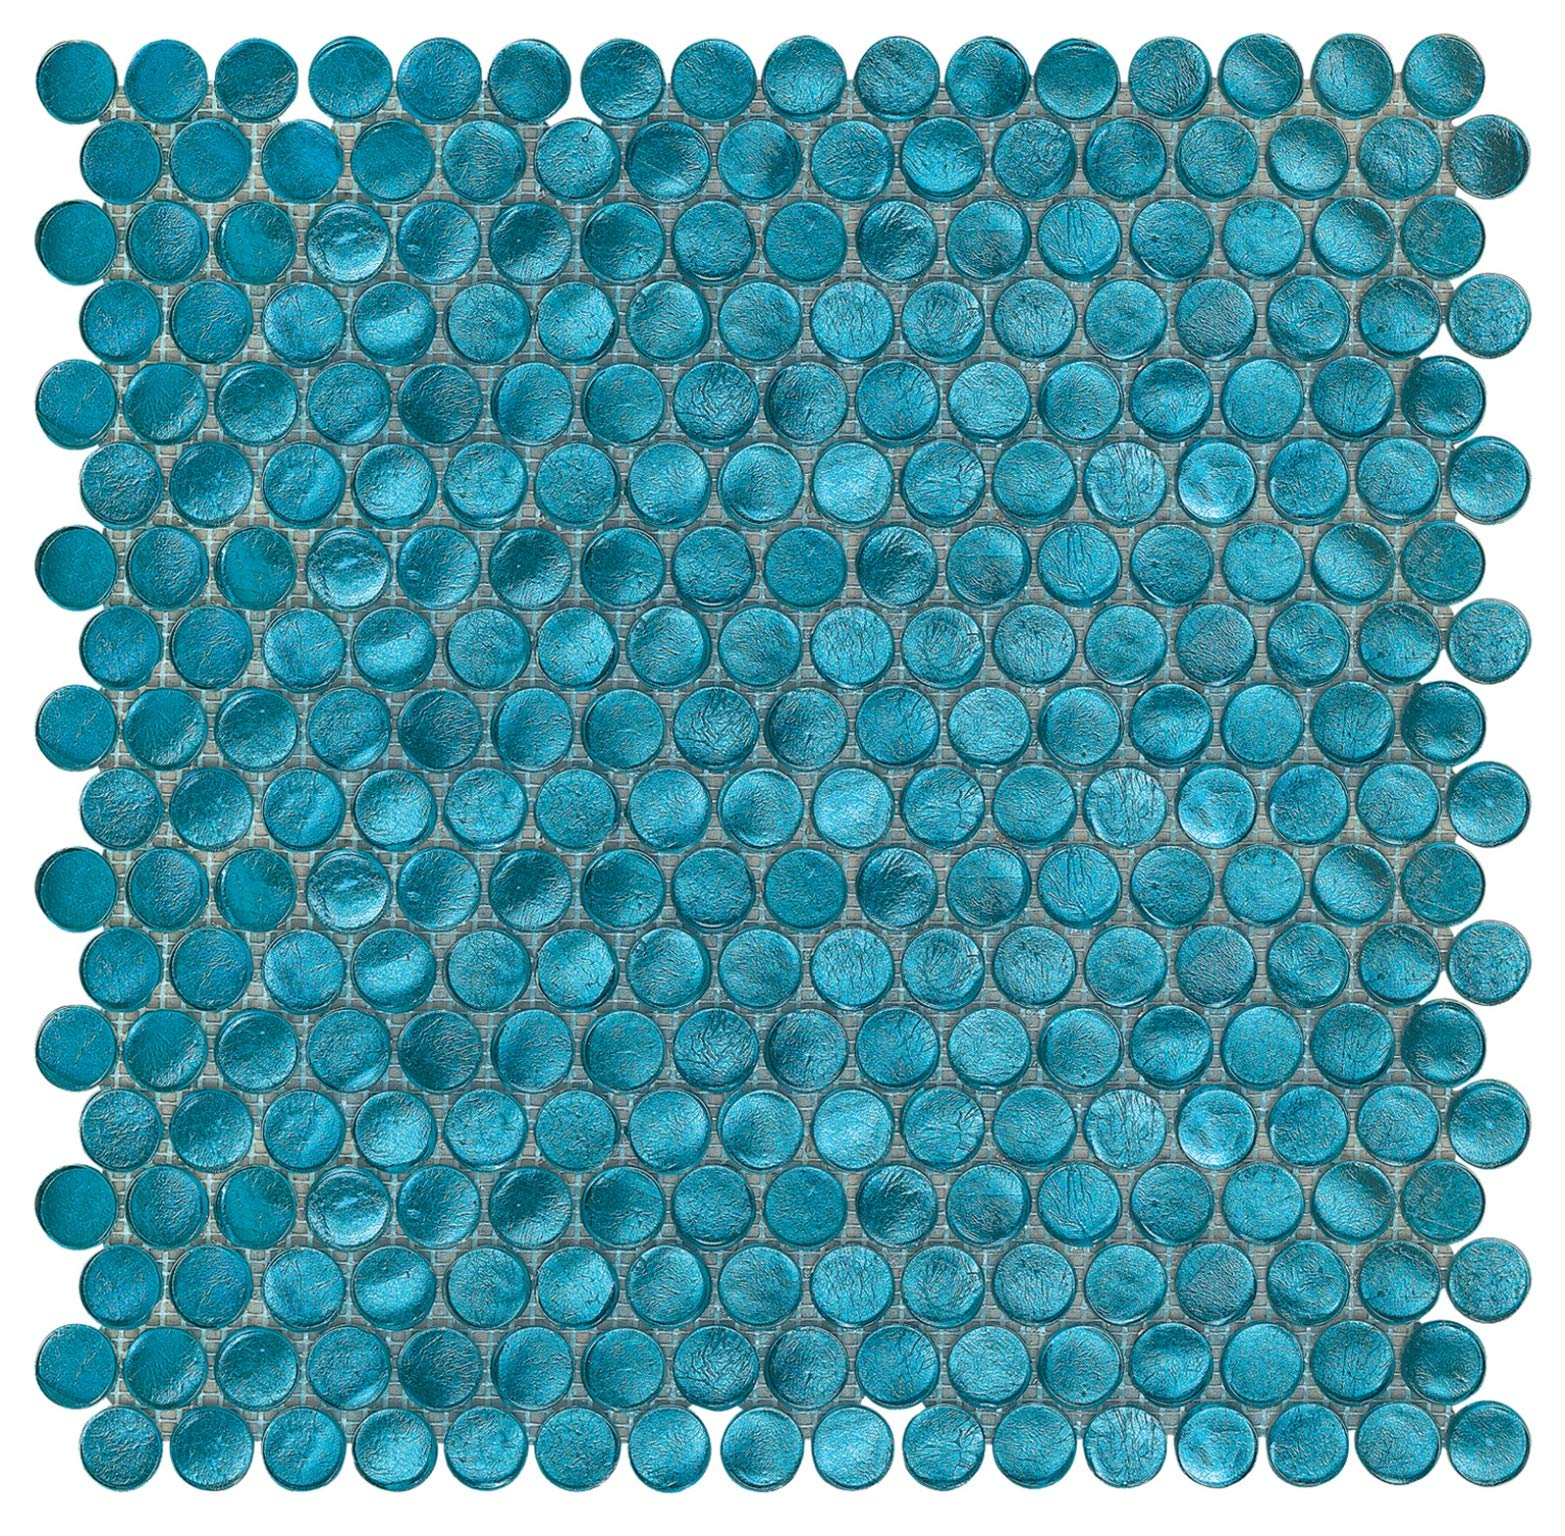 Aruba Turquoise Shimmer Penny Round Glass Mosaic by Squarefeet Depot